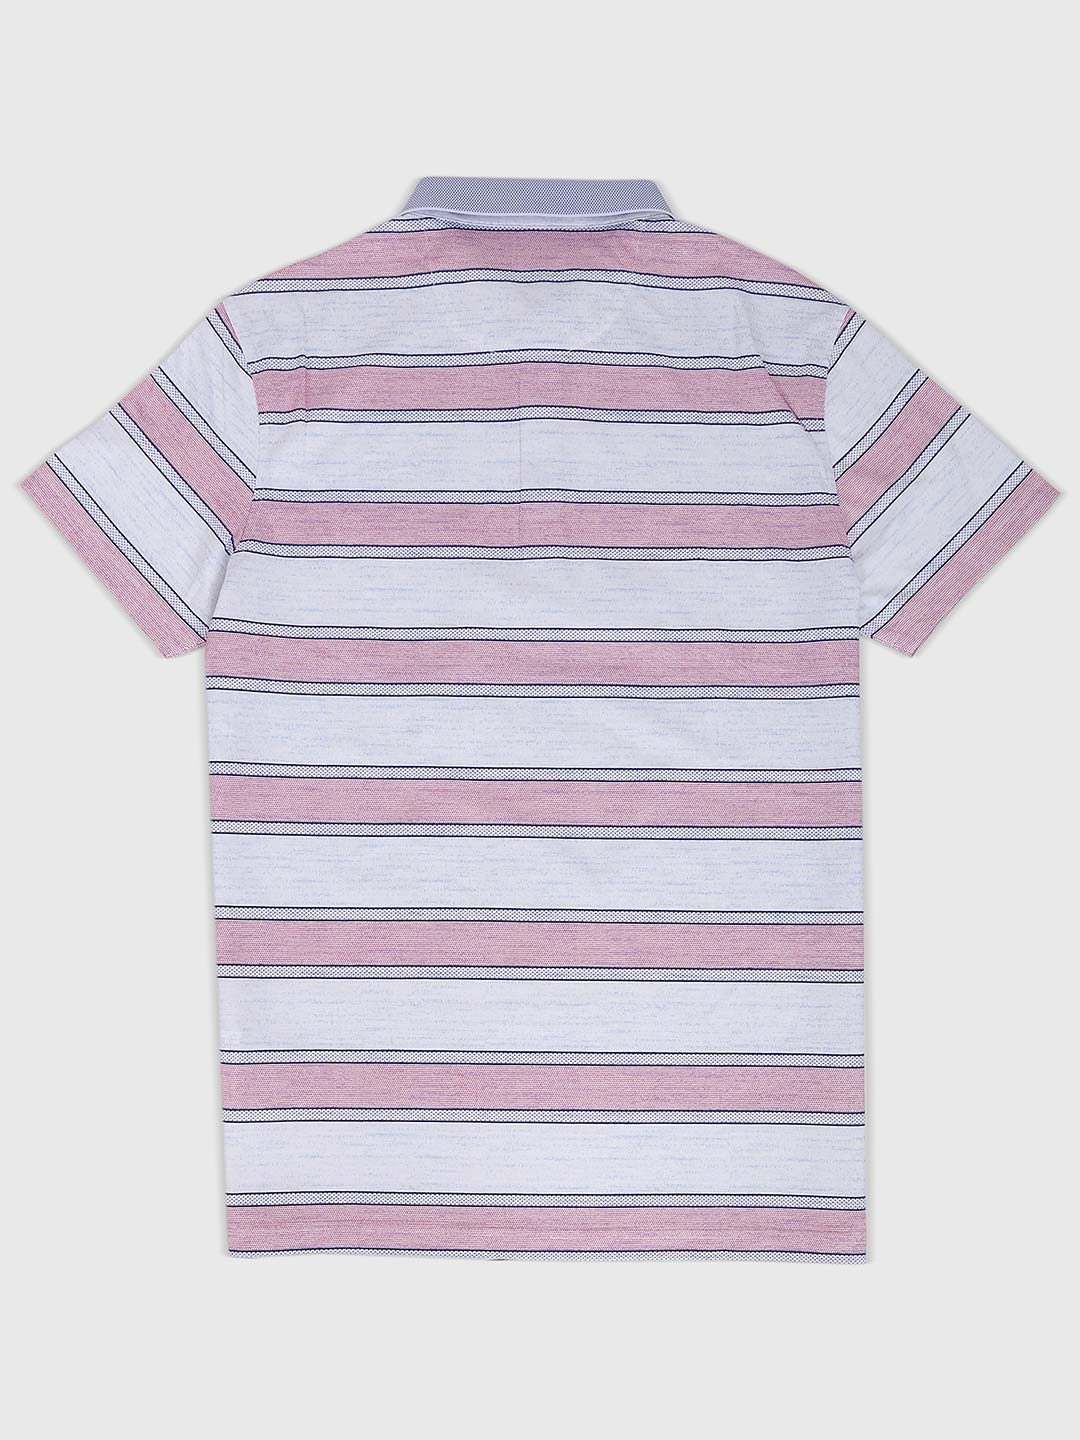 eaea81cad4fccd Psoulz pink and off white striped t-shirt - G3-MTS7811